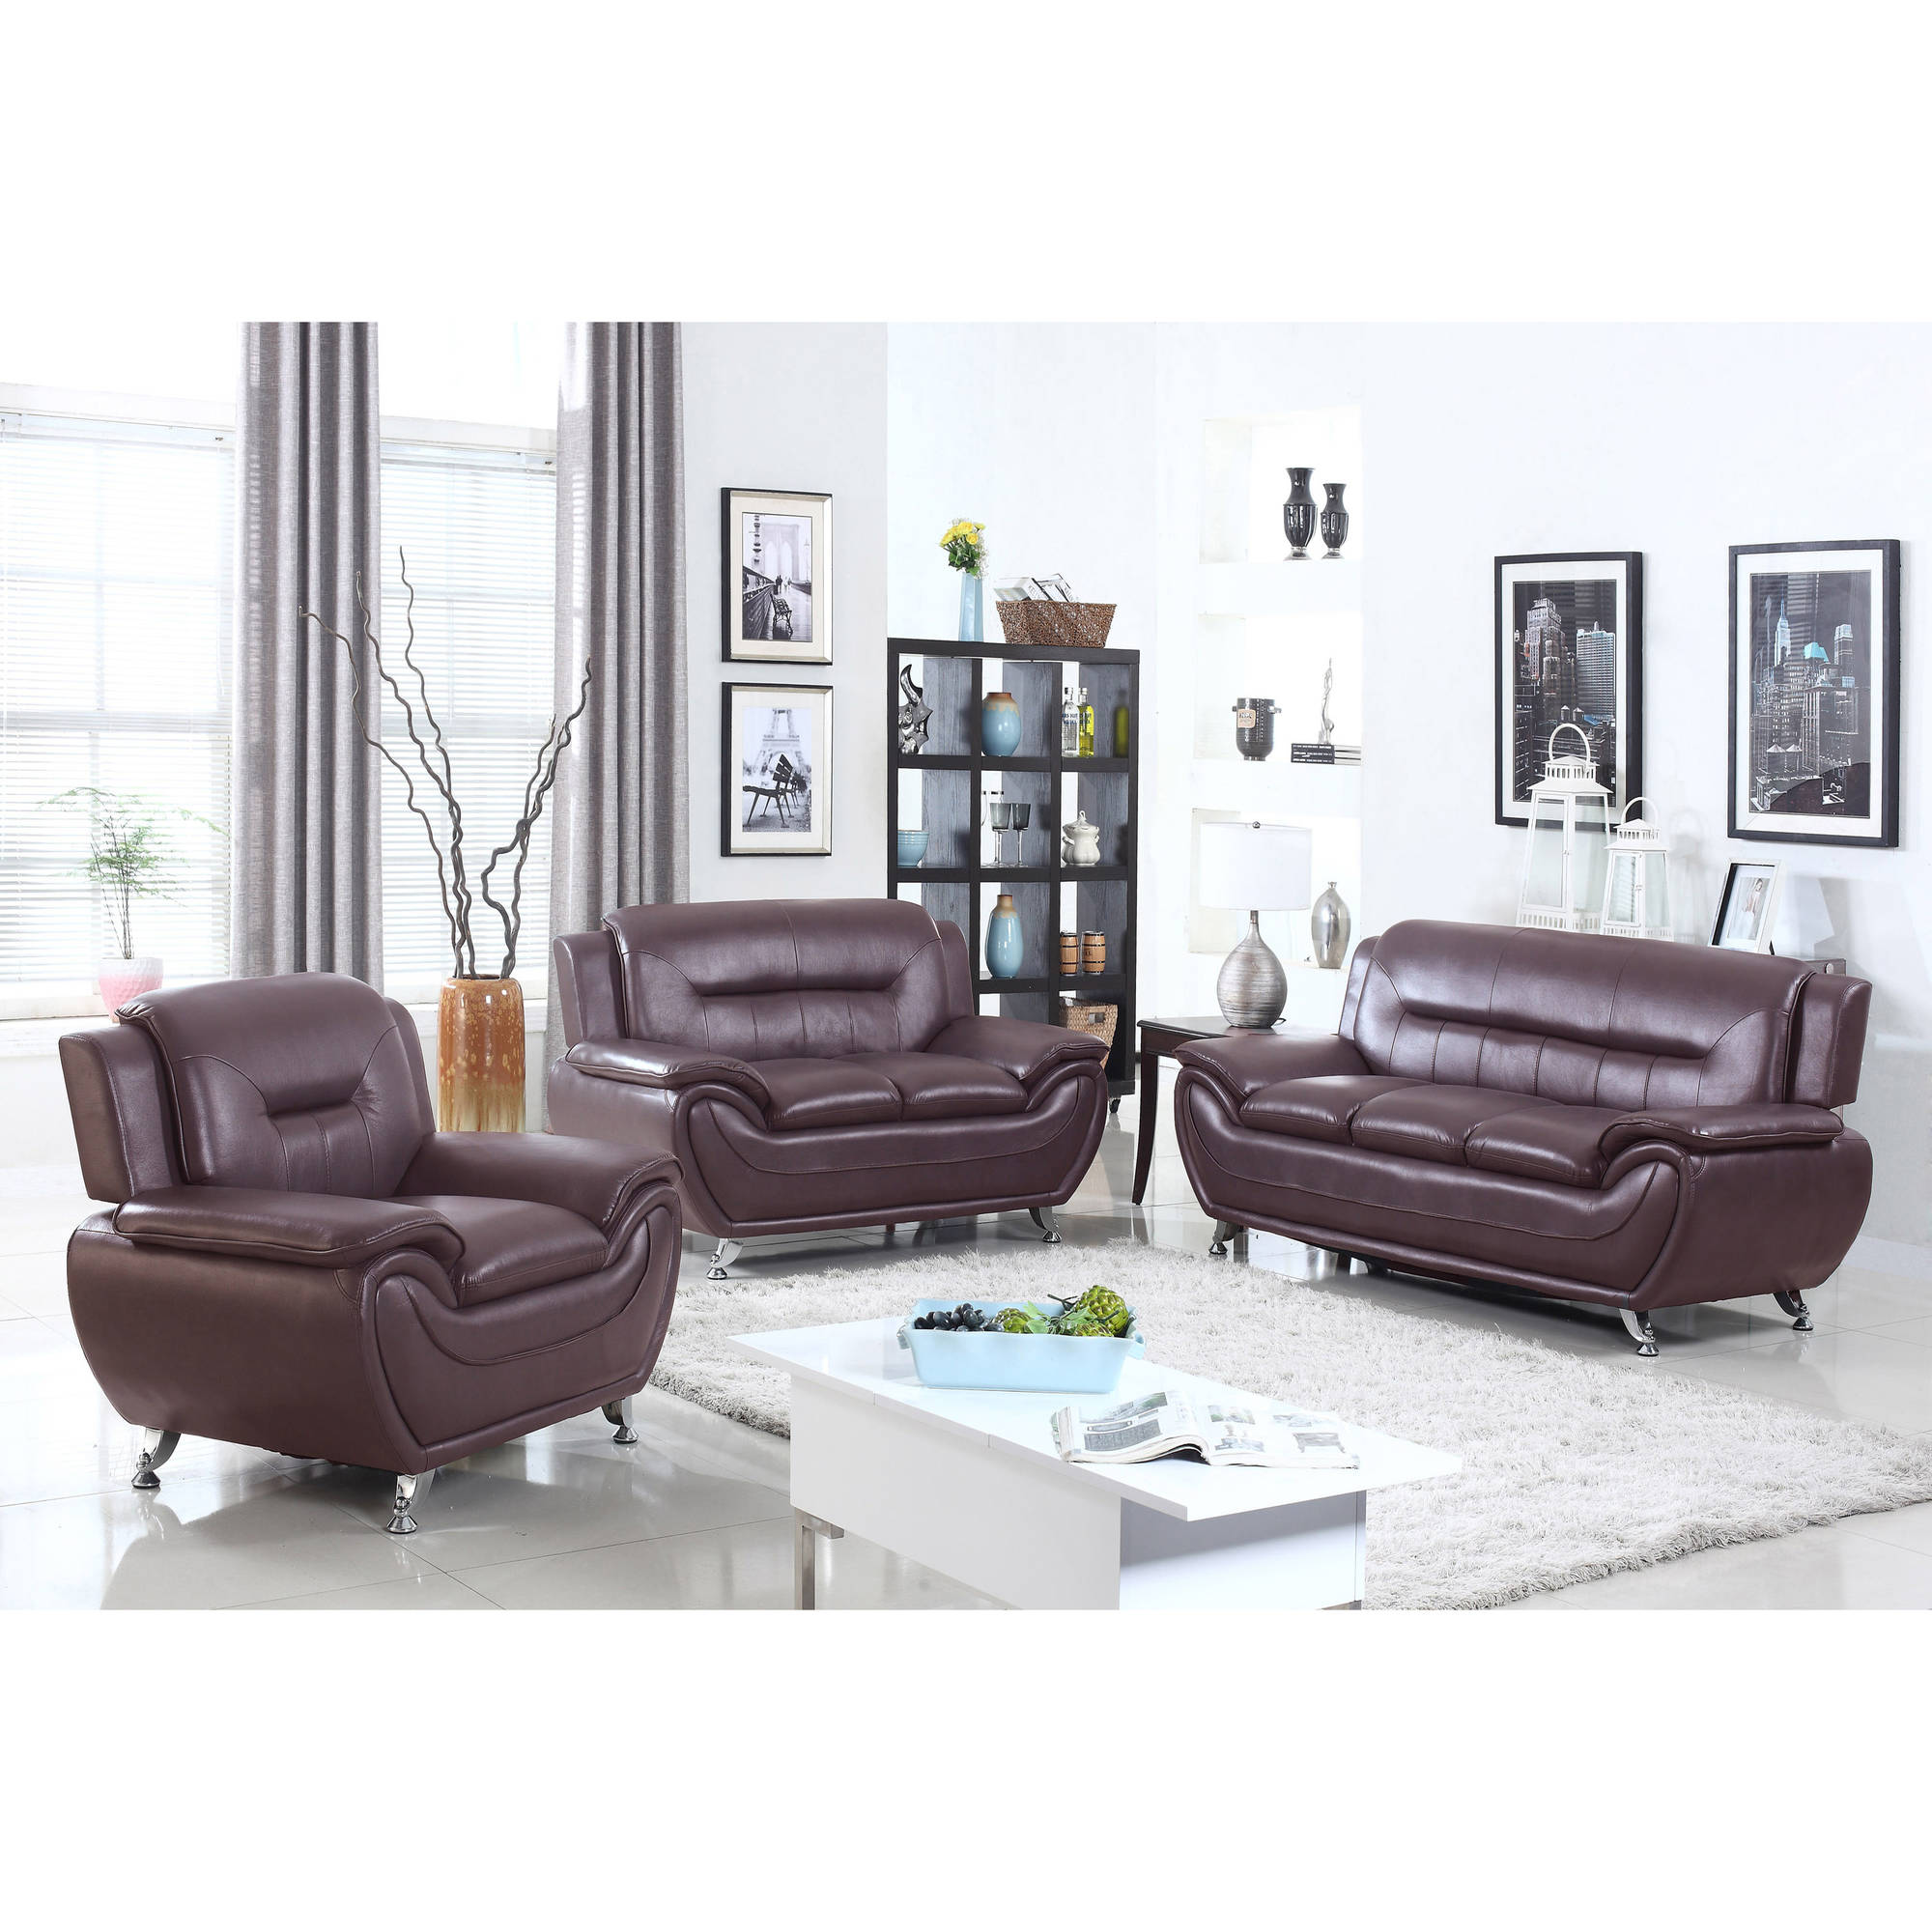 UFE Norton Dark Brown Faux Leather 3 Piece Modern Living Room Sofa Set